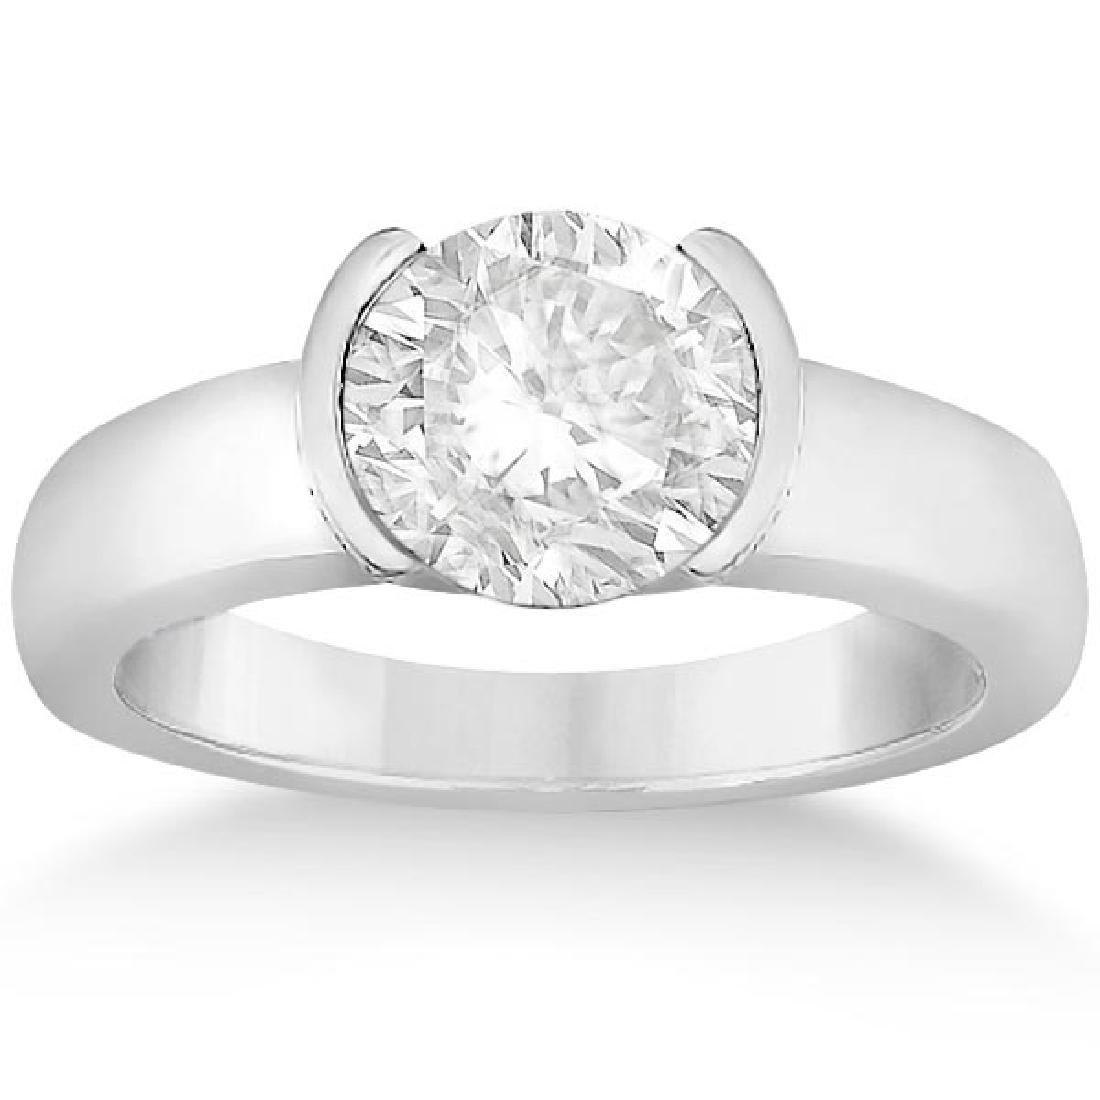 Half-Bezel Solitaire Engagement Ring Setting in Platinu